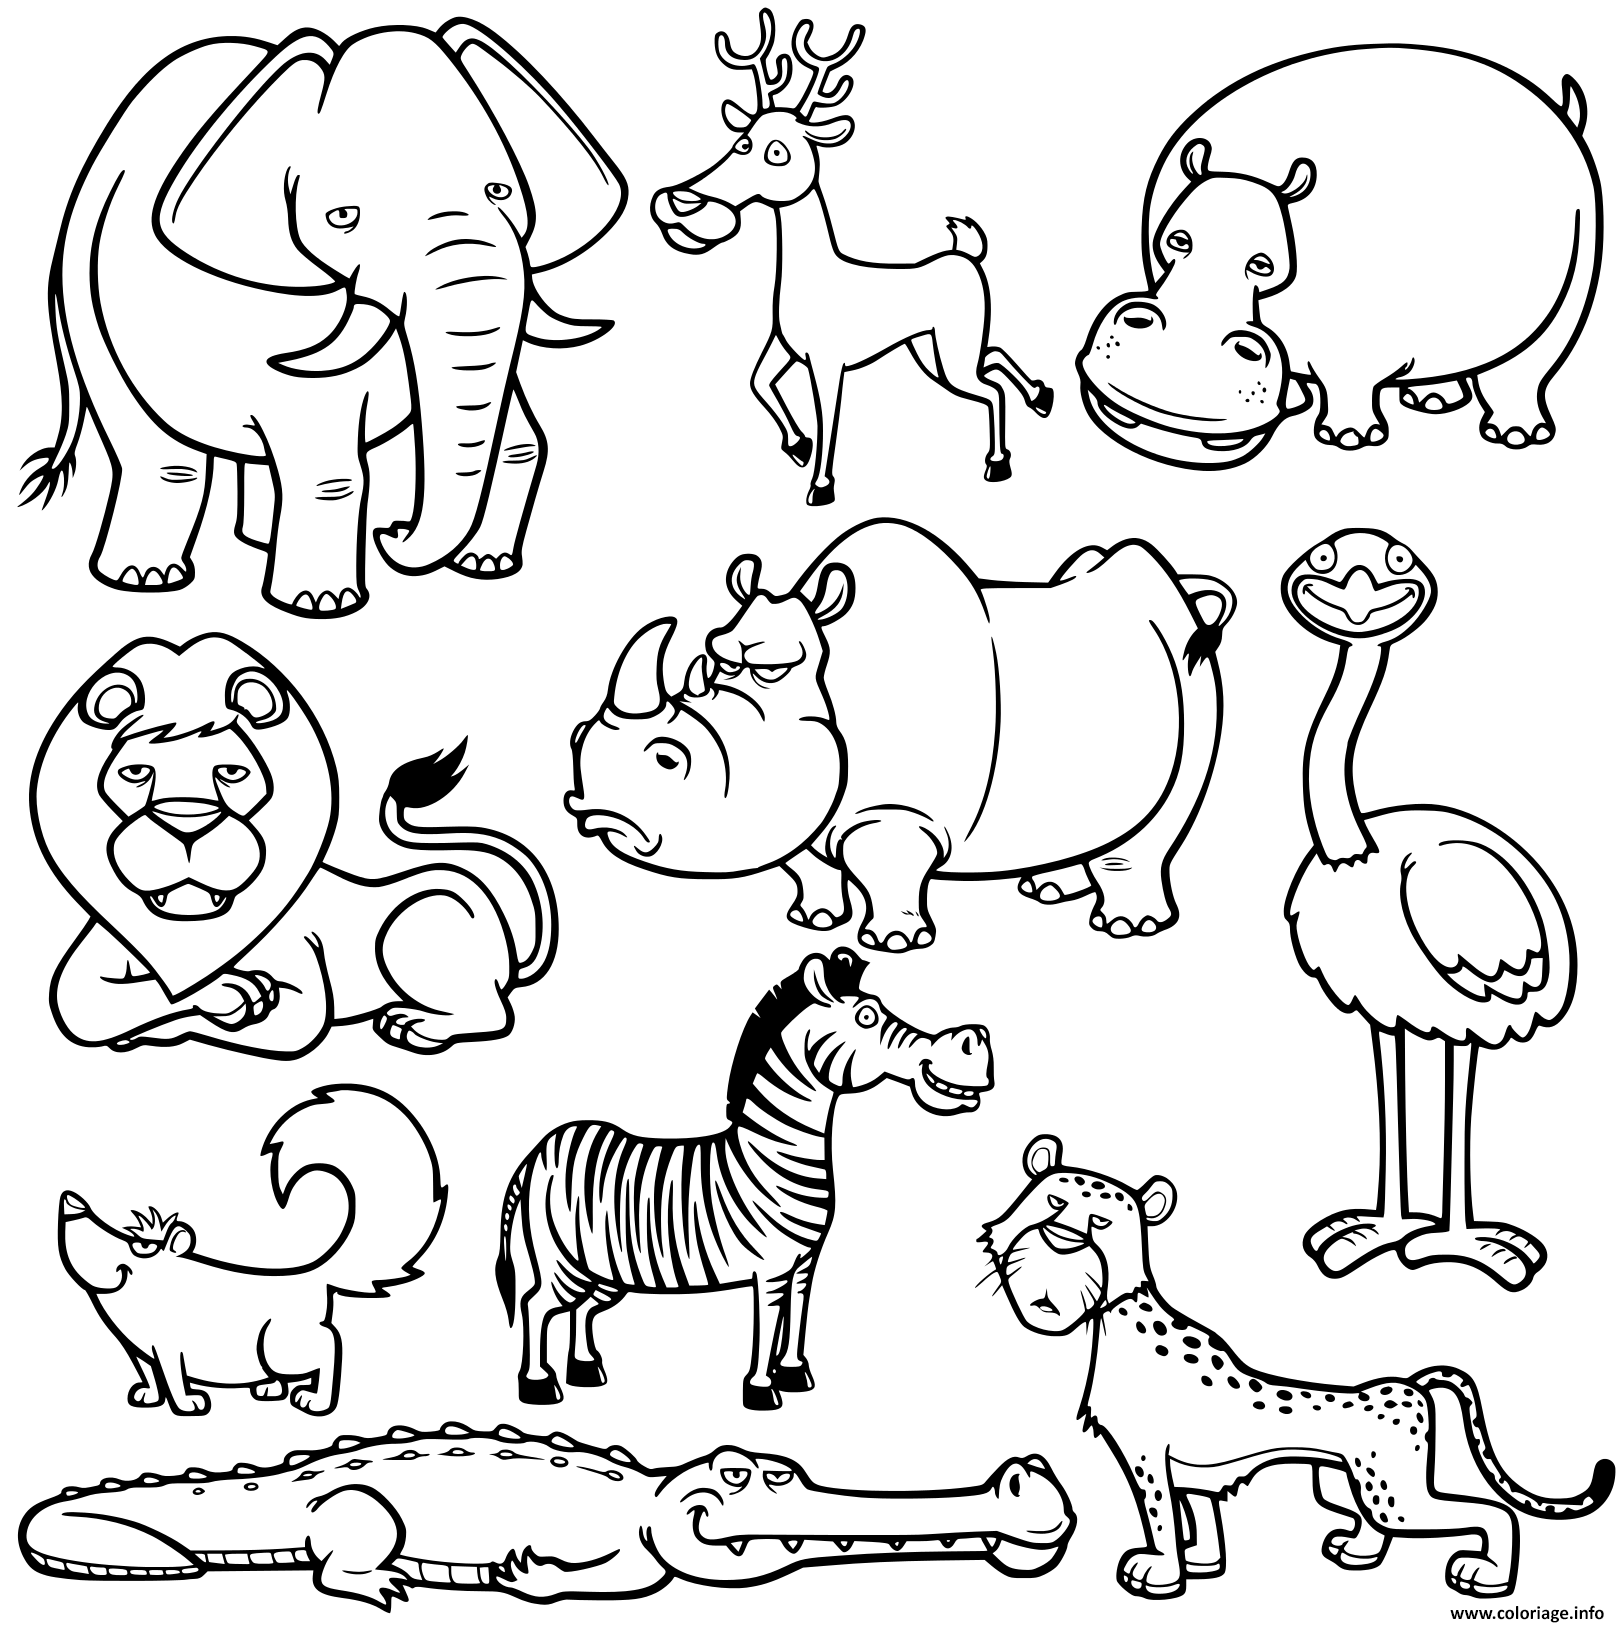 Coloriage Animaux Sauvages Dessin Animaux A Imprimer